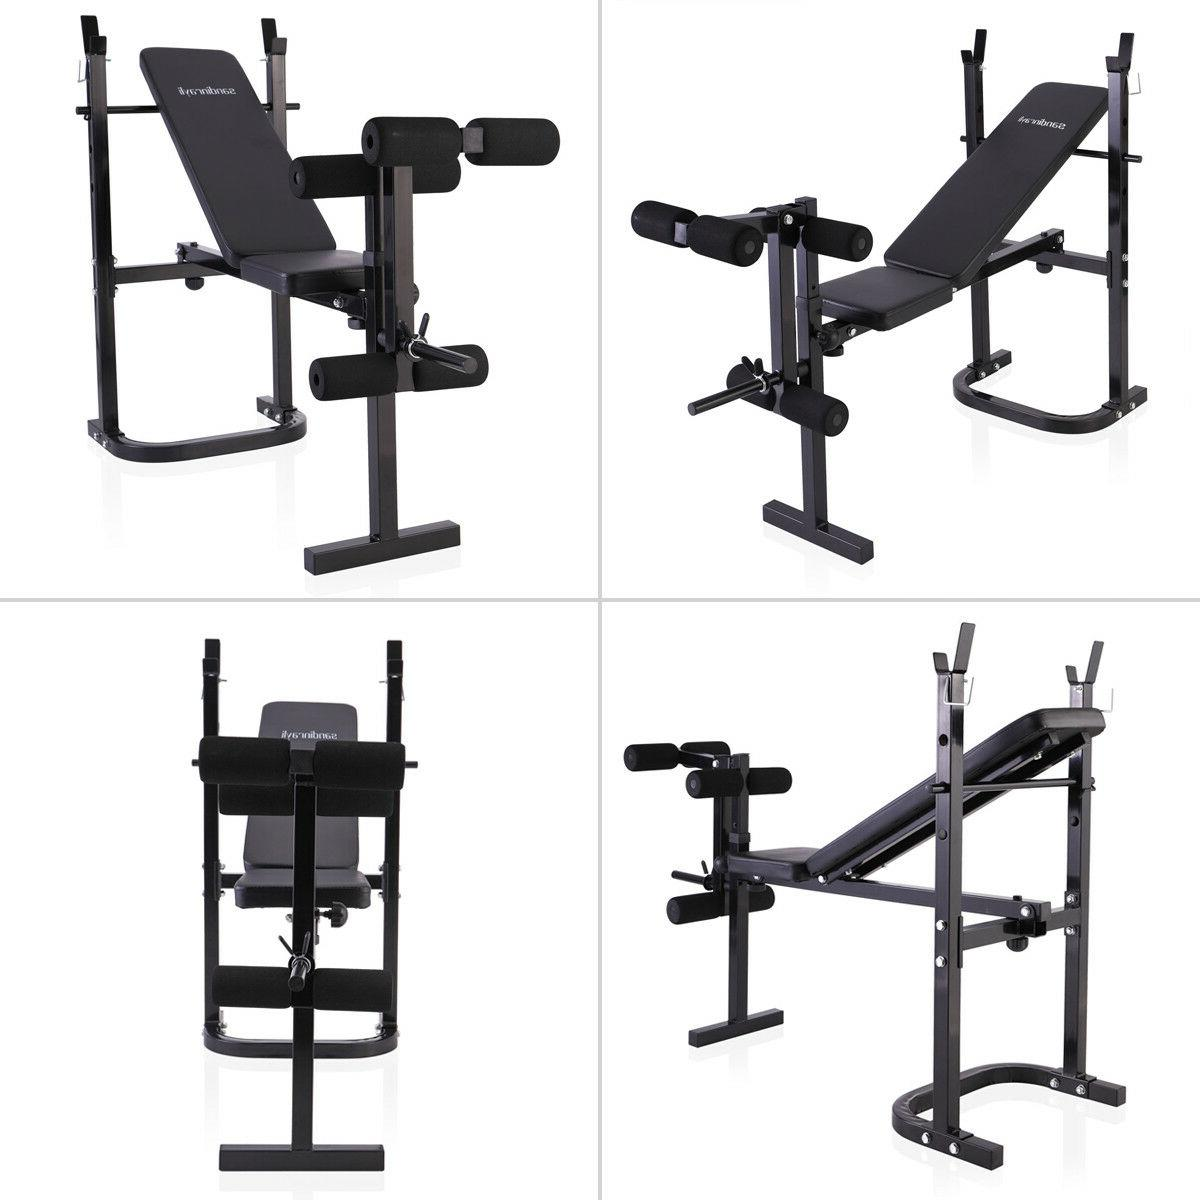 Weight Press Adjustable Incline